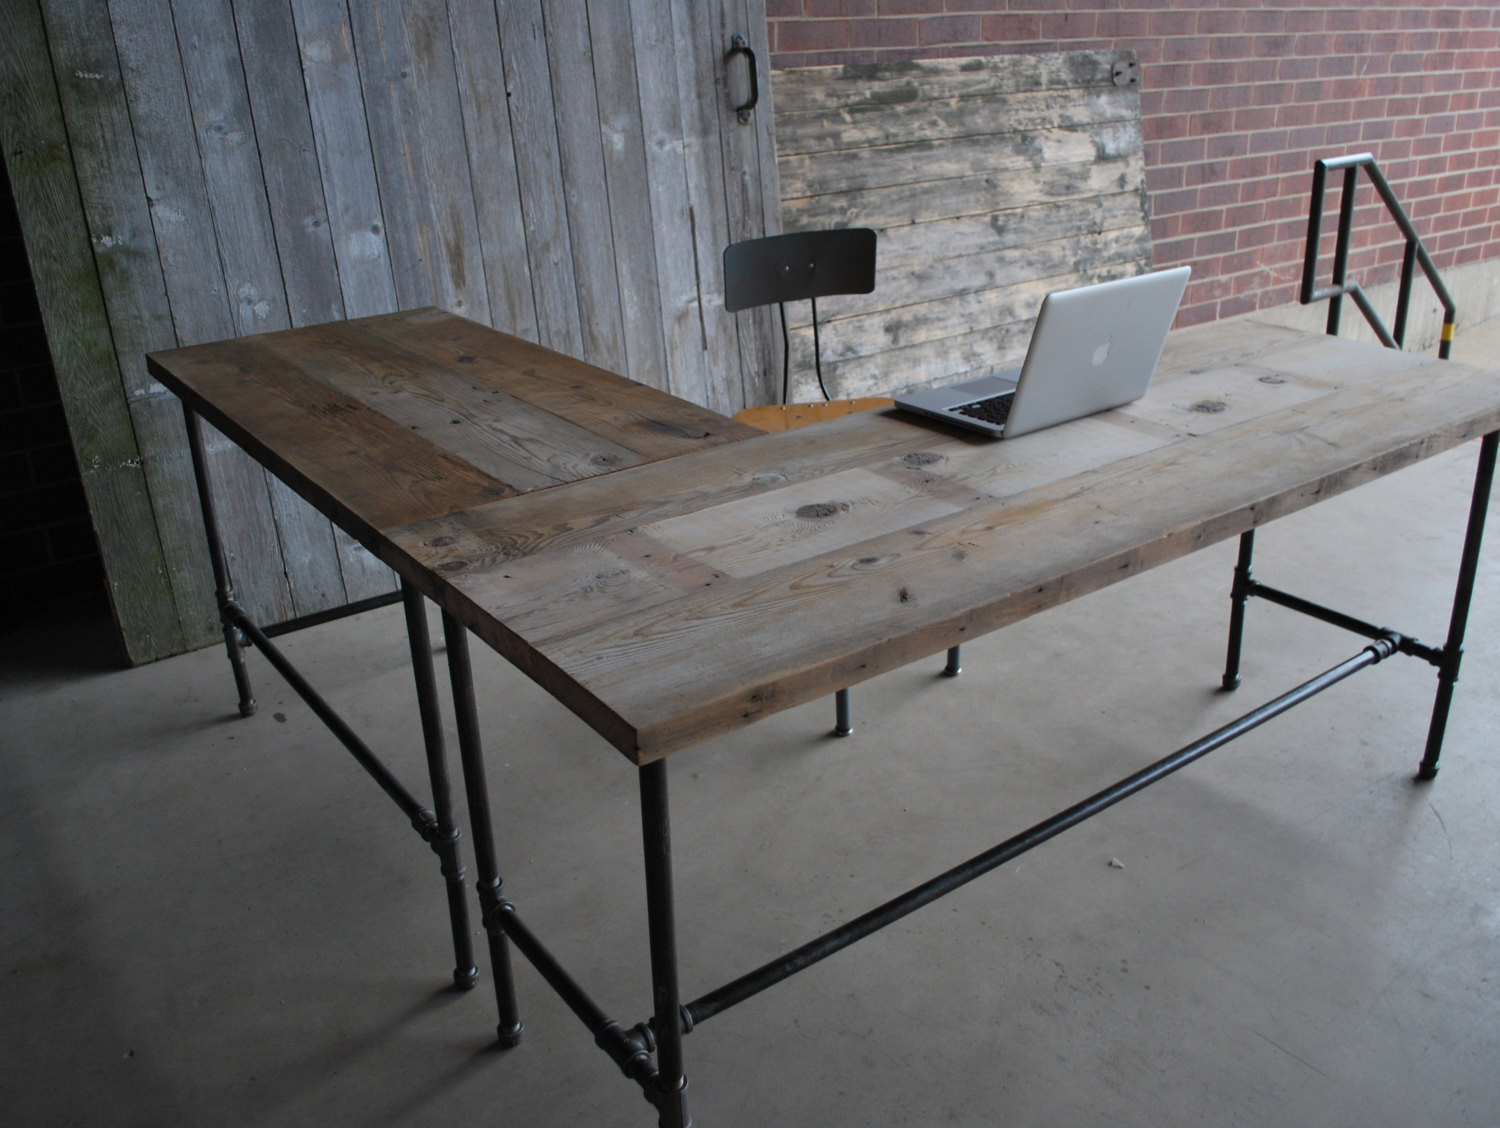 Best ideas about Wood Desk DIY . Save or Pin L shape modern rustic desk made of reclaimed wood Choose your Now.